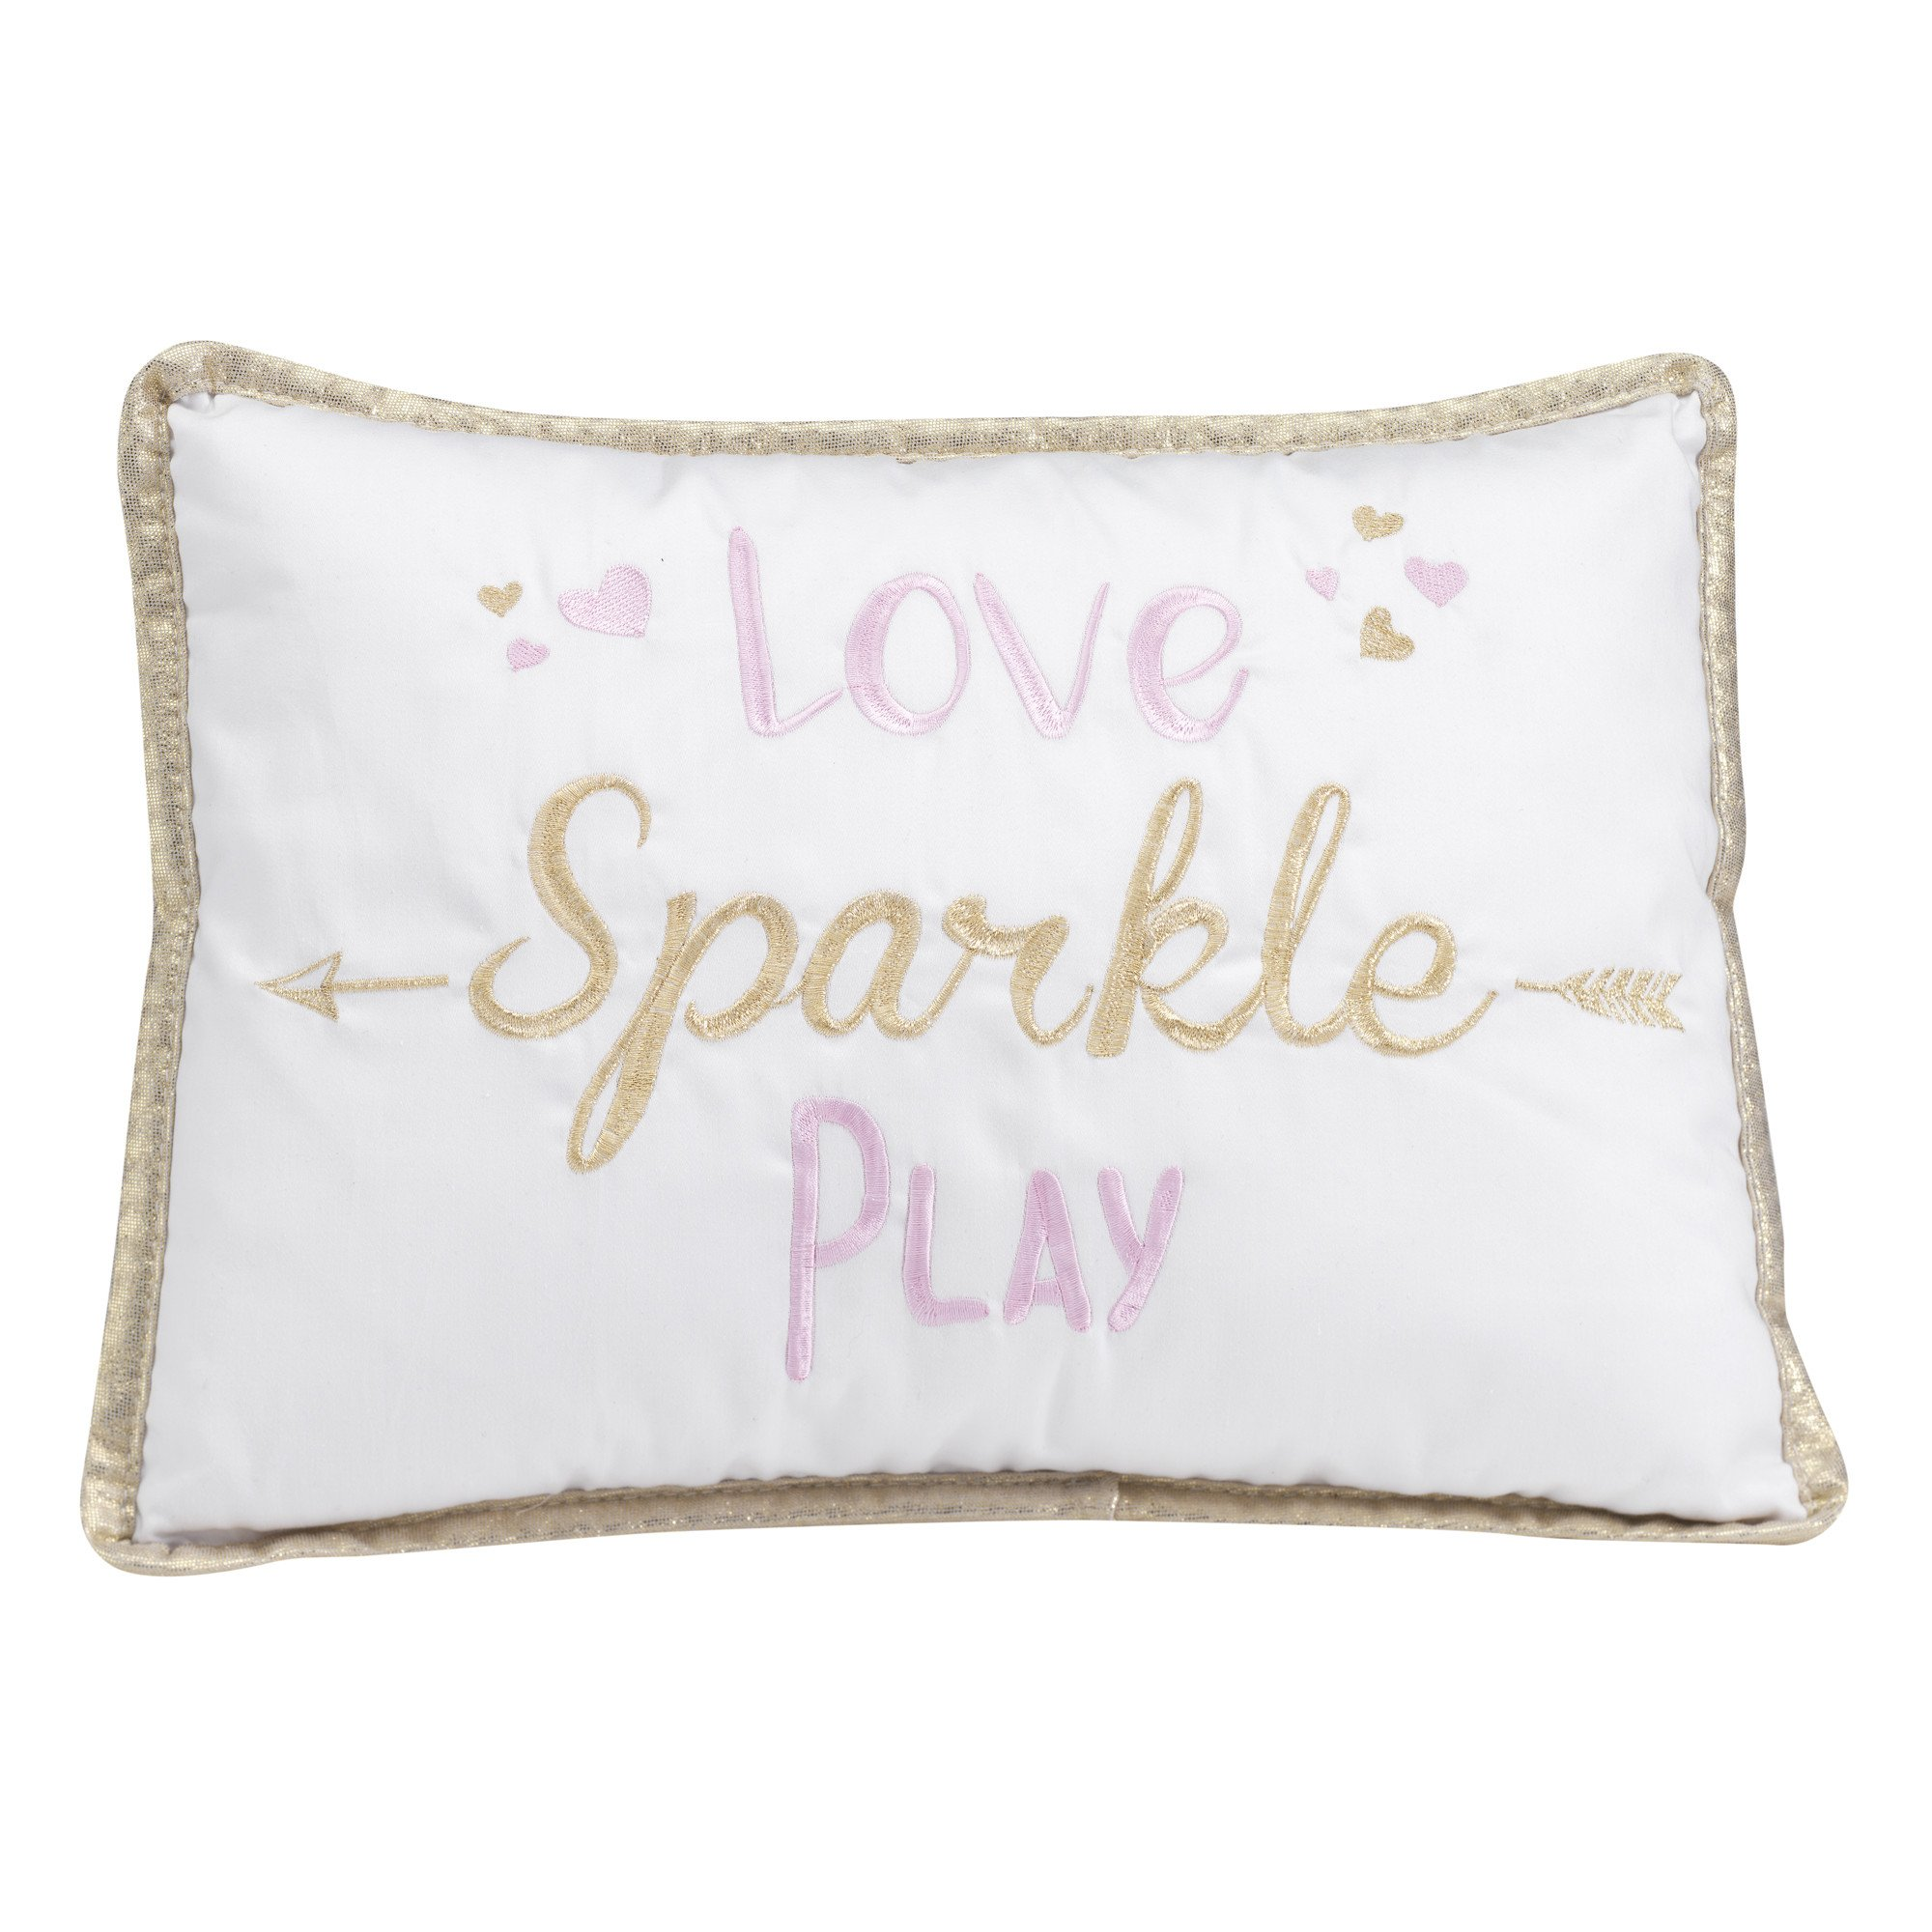 Decorative Pillows - Pillowcases and Bows